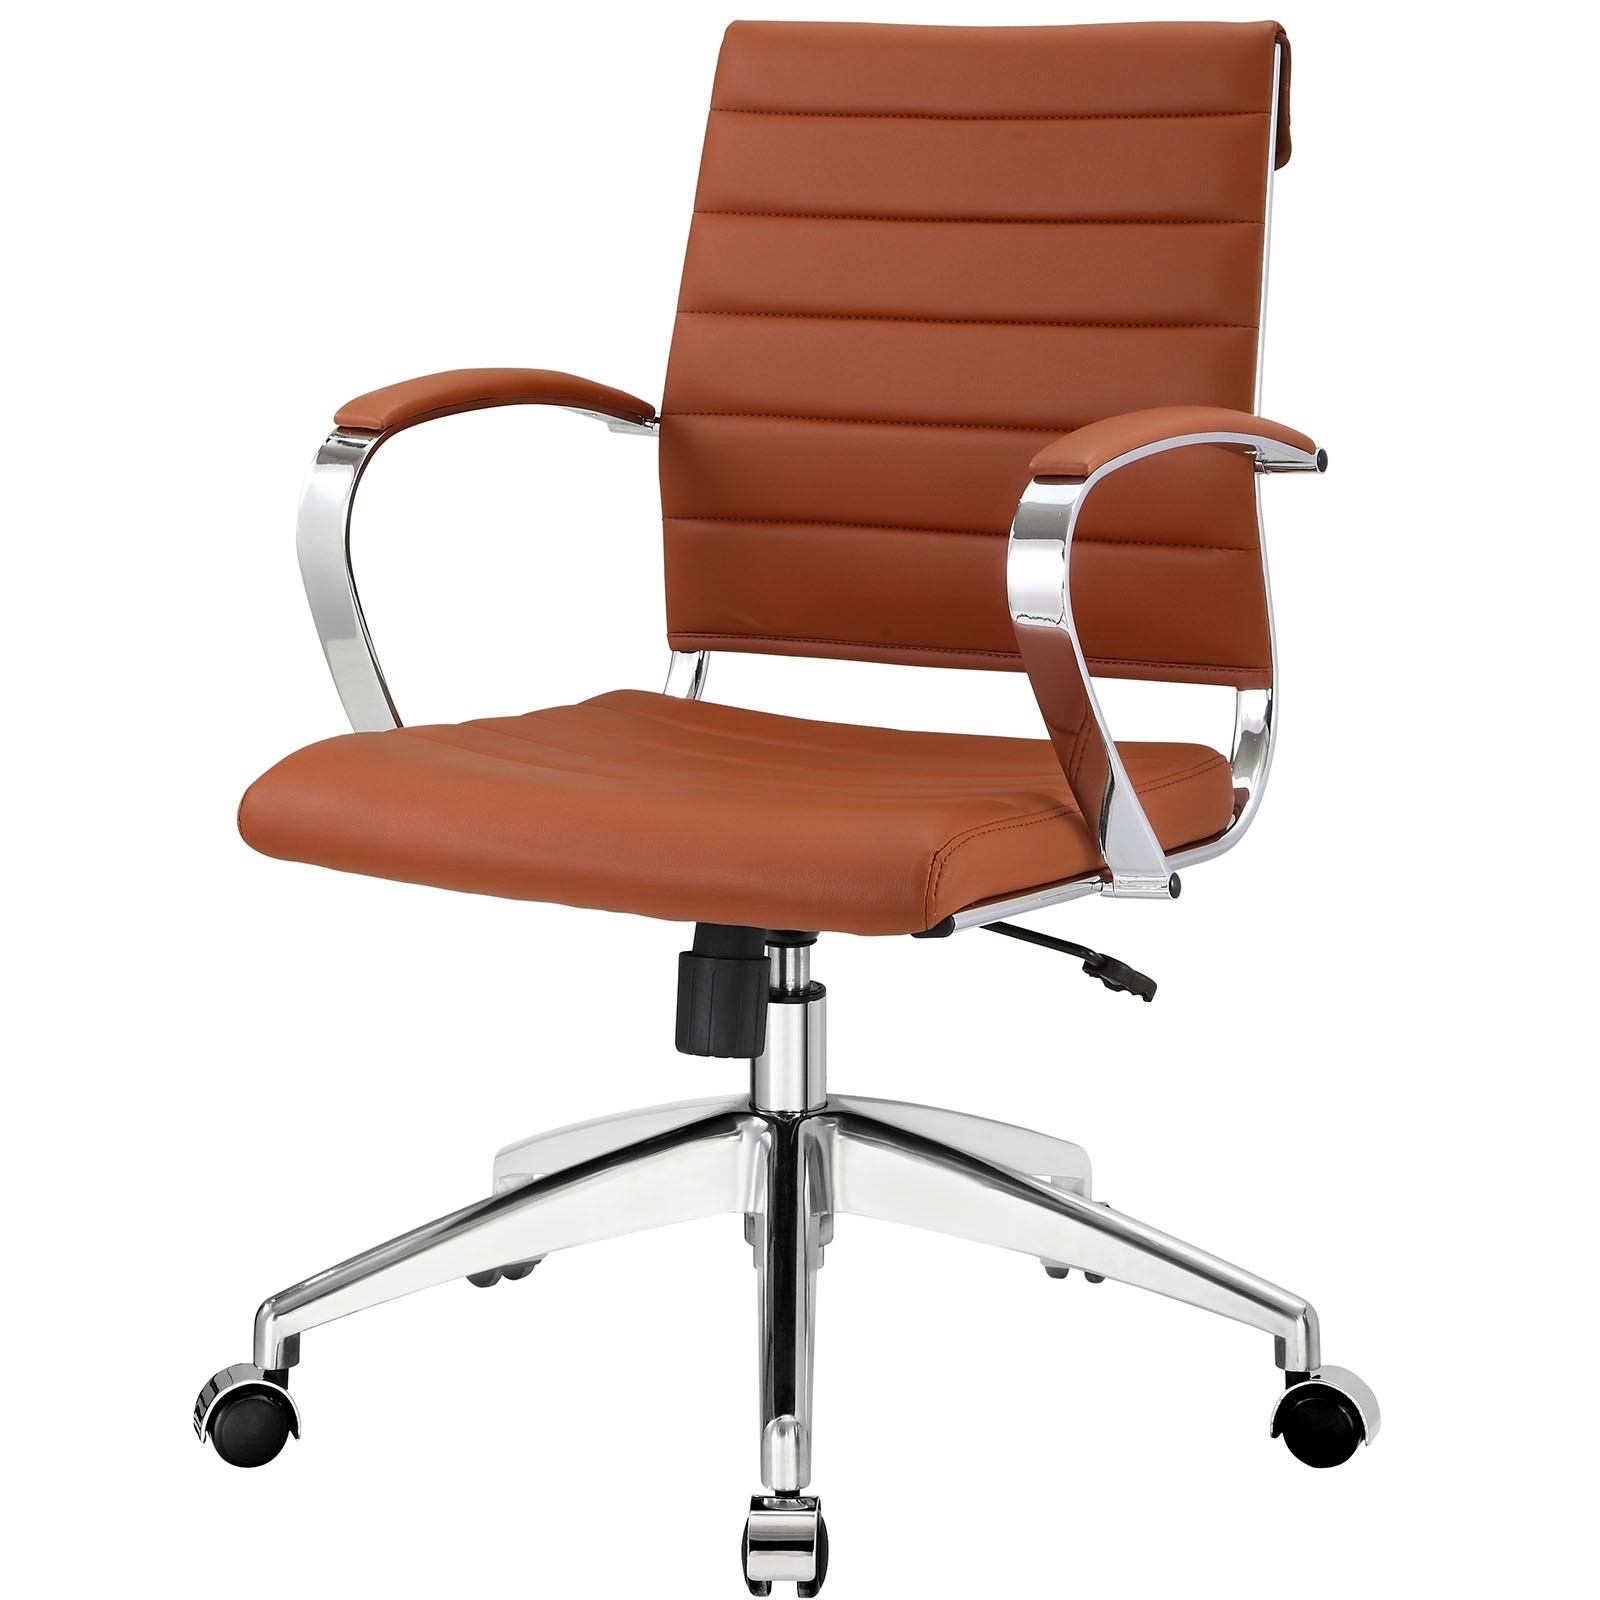 Well Liked Tan Brown Mid Back Executive Office Chairs With Jive Mid Back Office Chair, Terracotta Buy Online At Best Price (View 3 of 20)